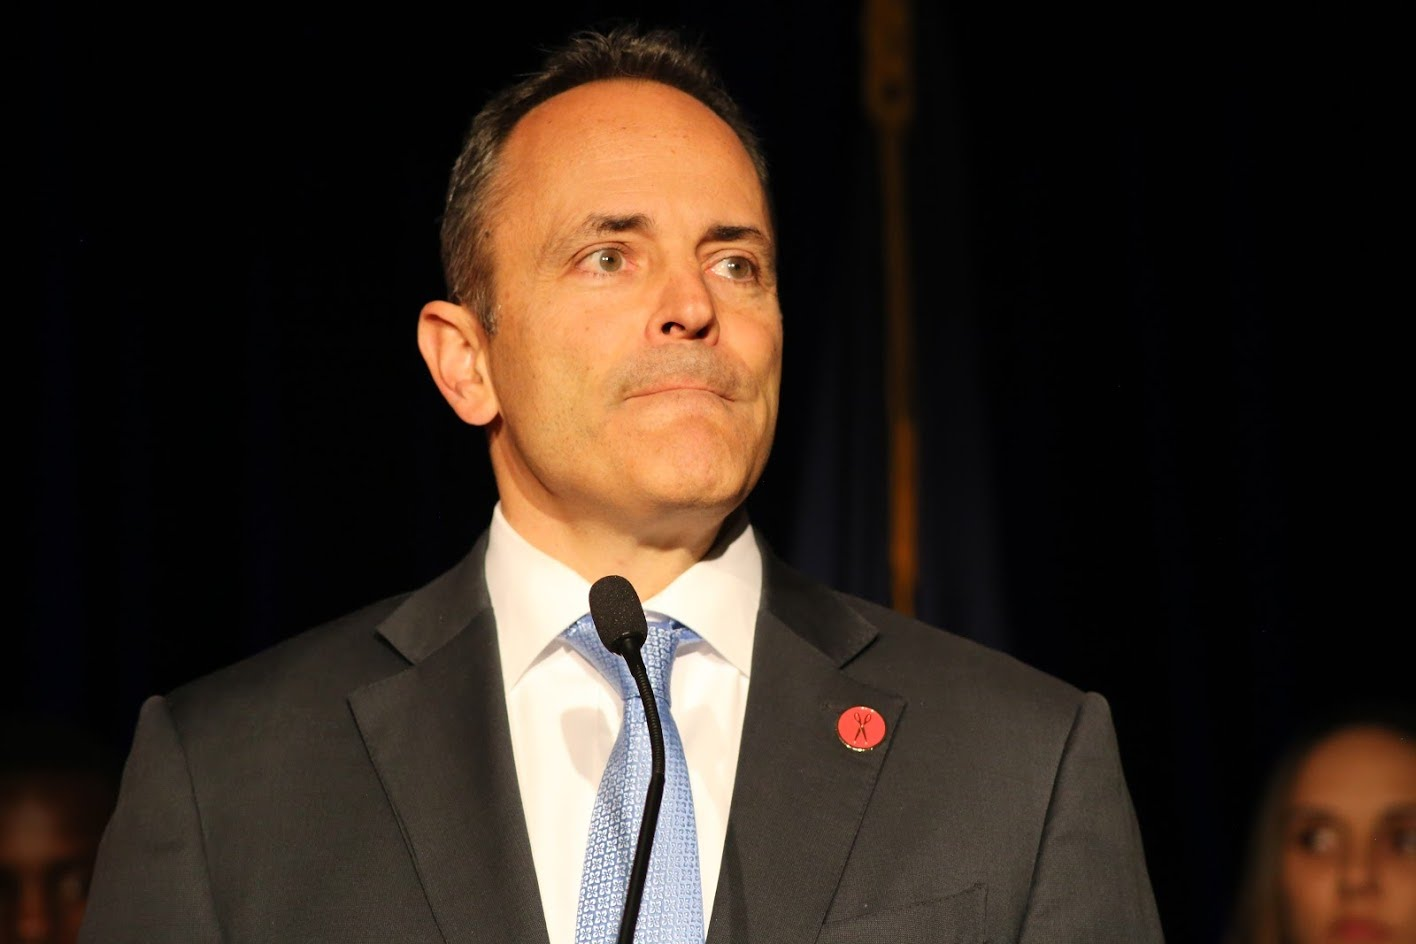 ANALYSIS: Exit Poll Provides A Closer Look at Bevin's Loss